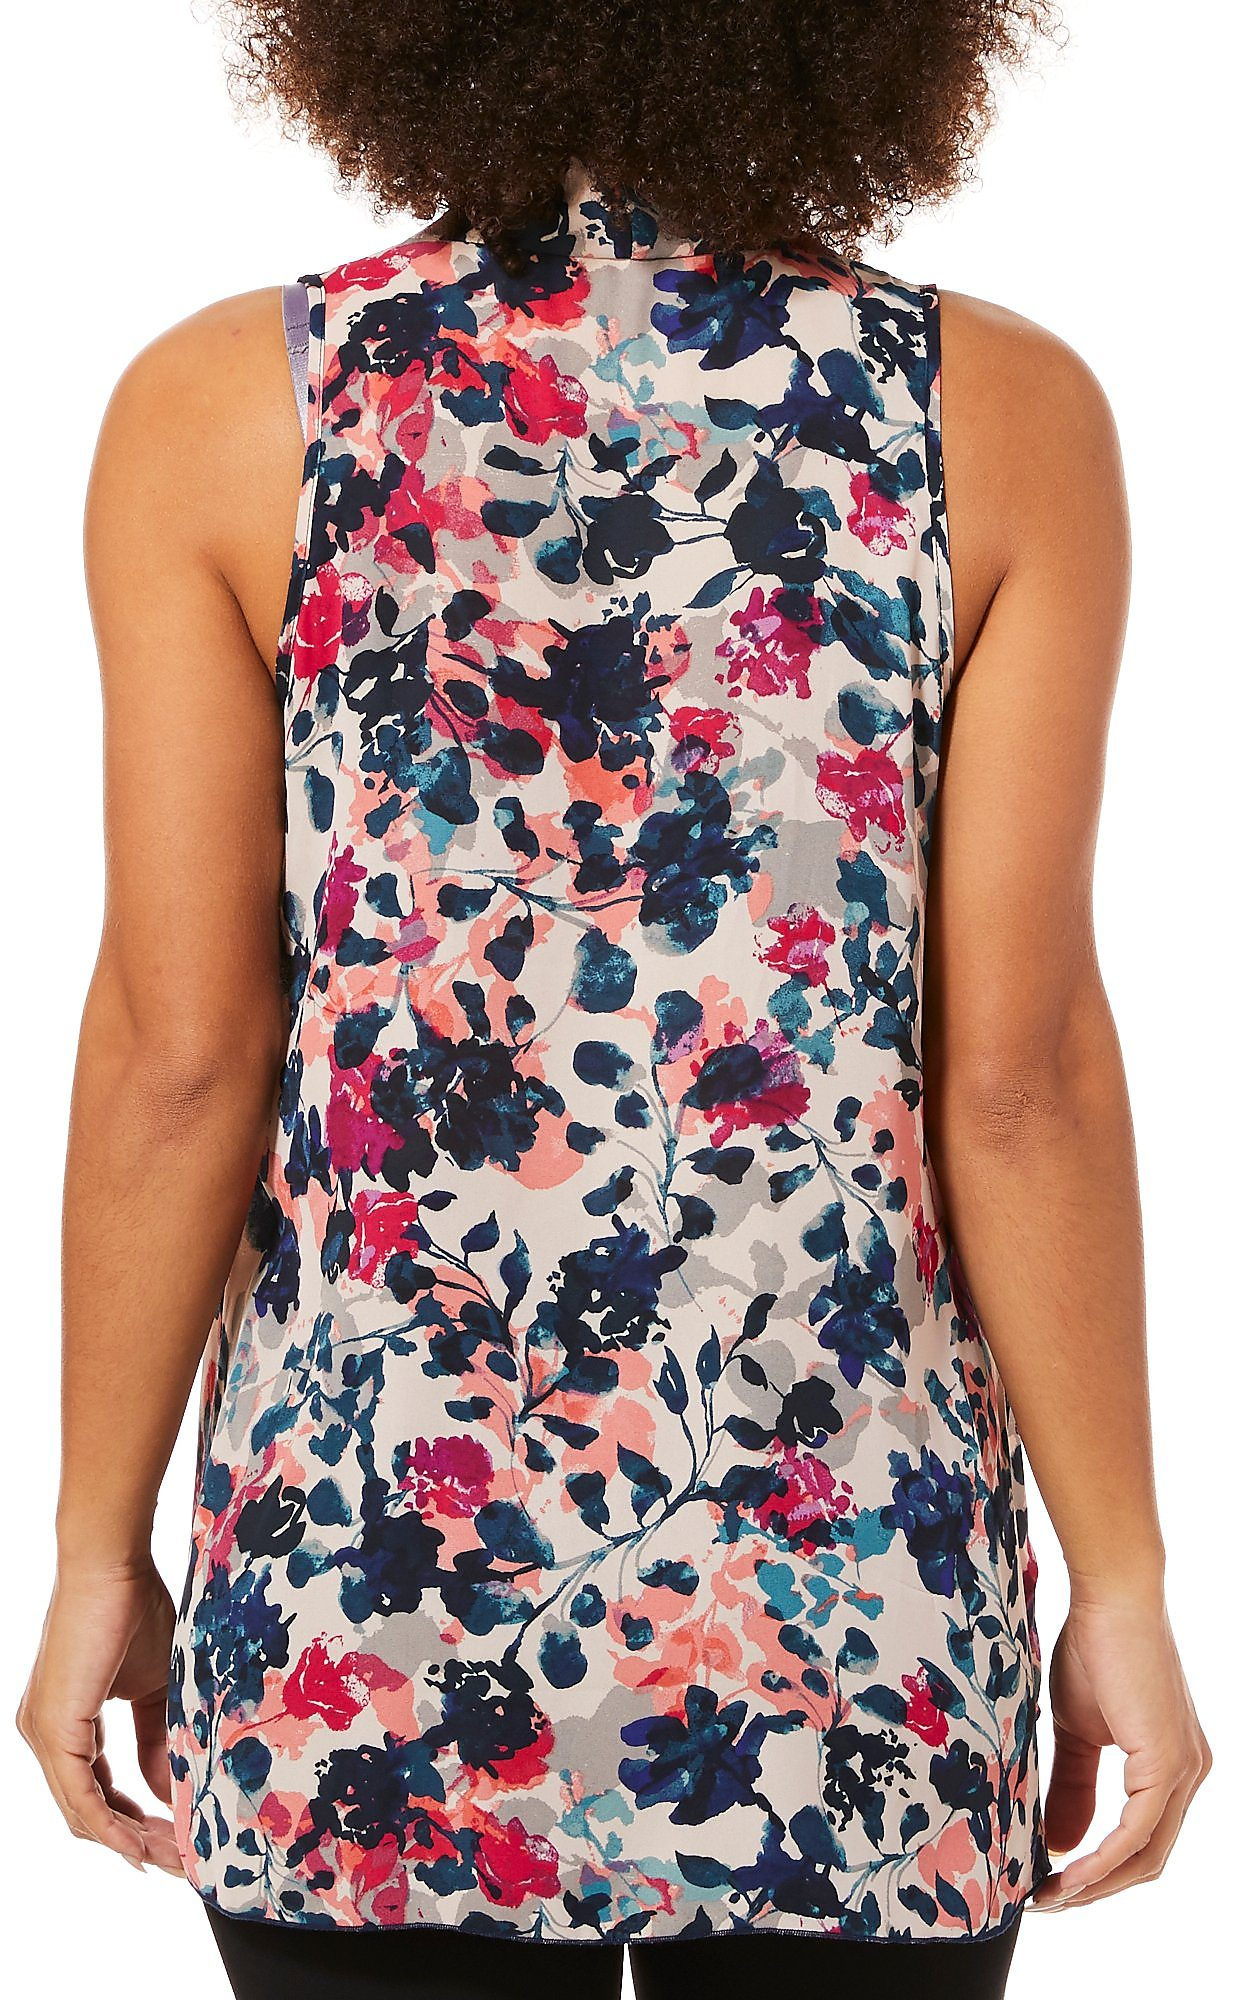 c90f305a56f98 Spense Womens Watercolor Floral High-Low Sleeveless Top